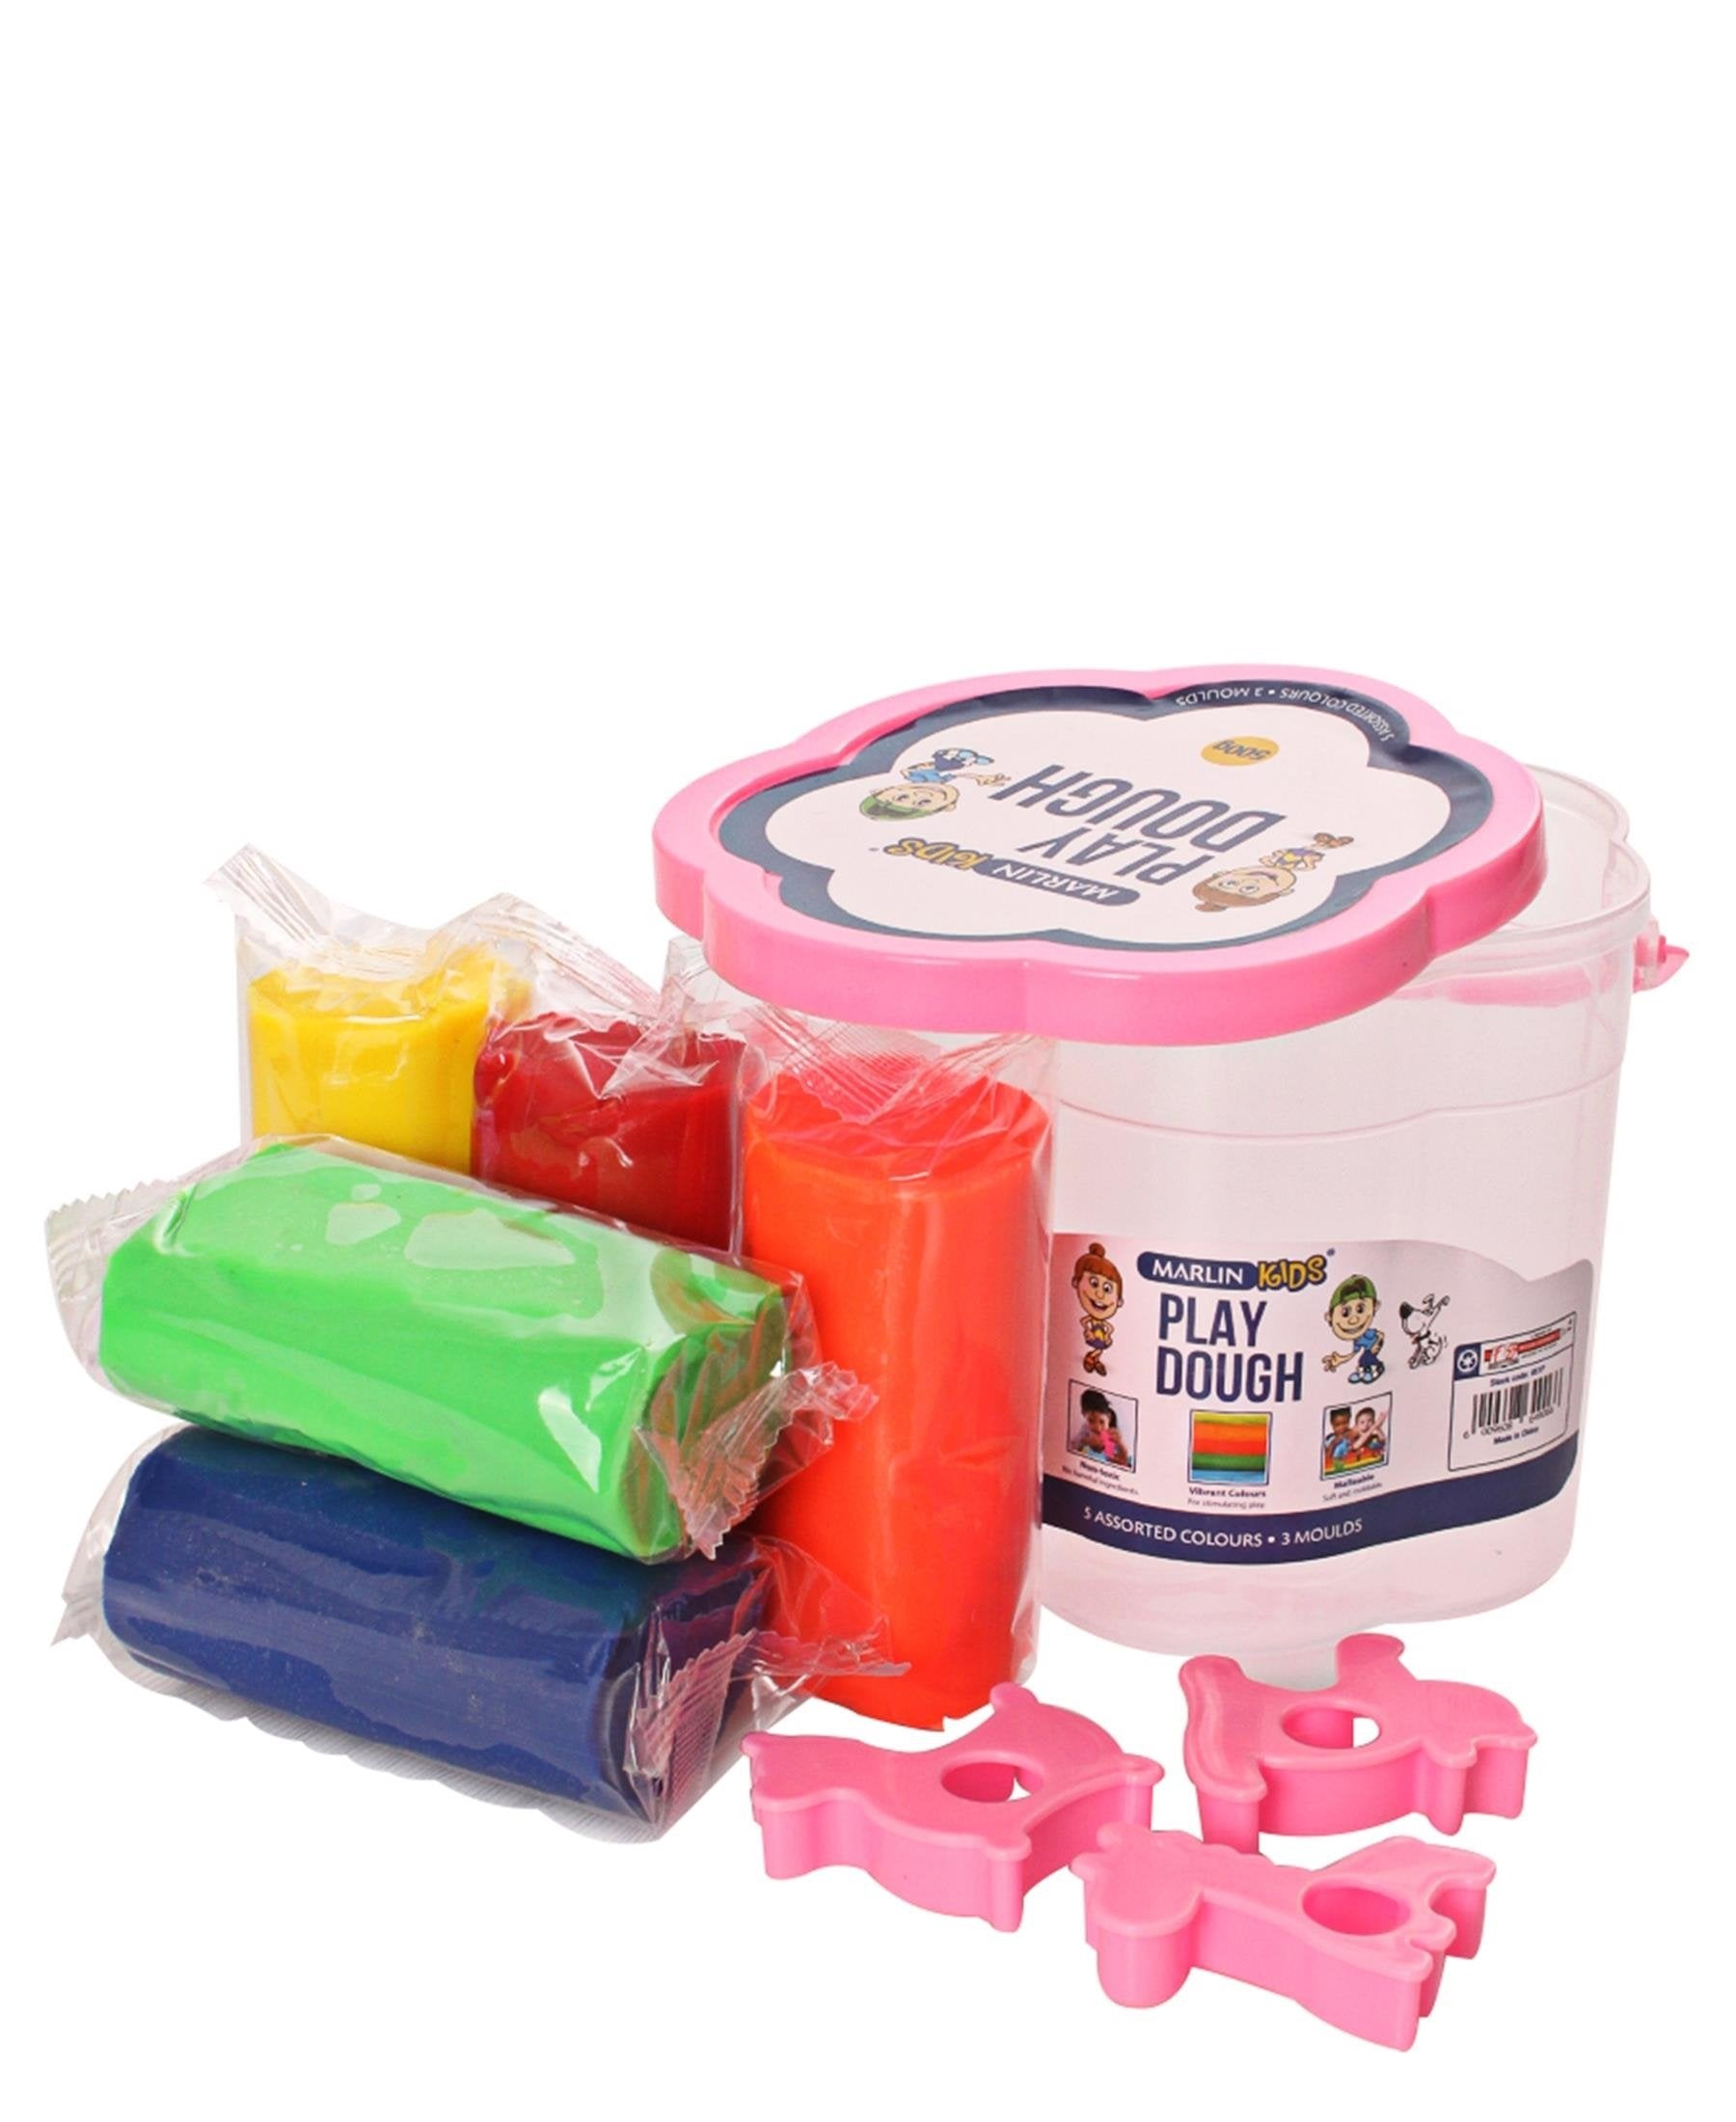 Marlin 5 Assorted Colours Play Dough Bucket - Pink